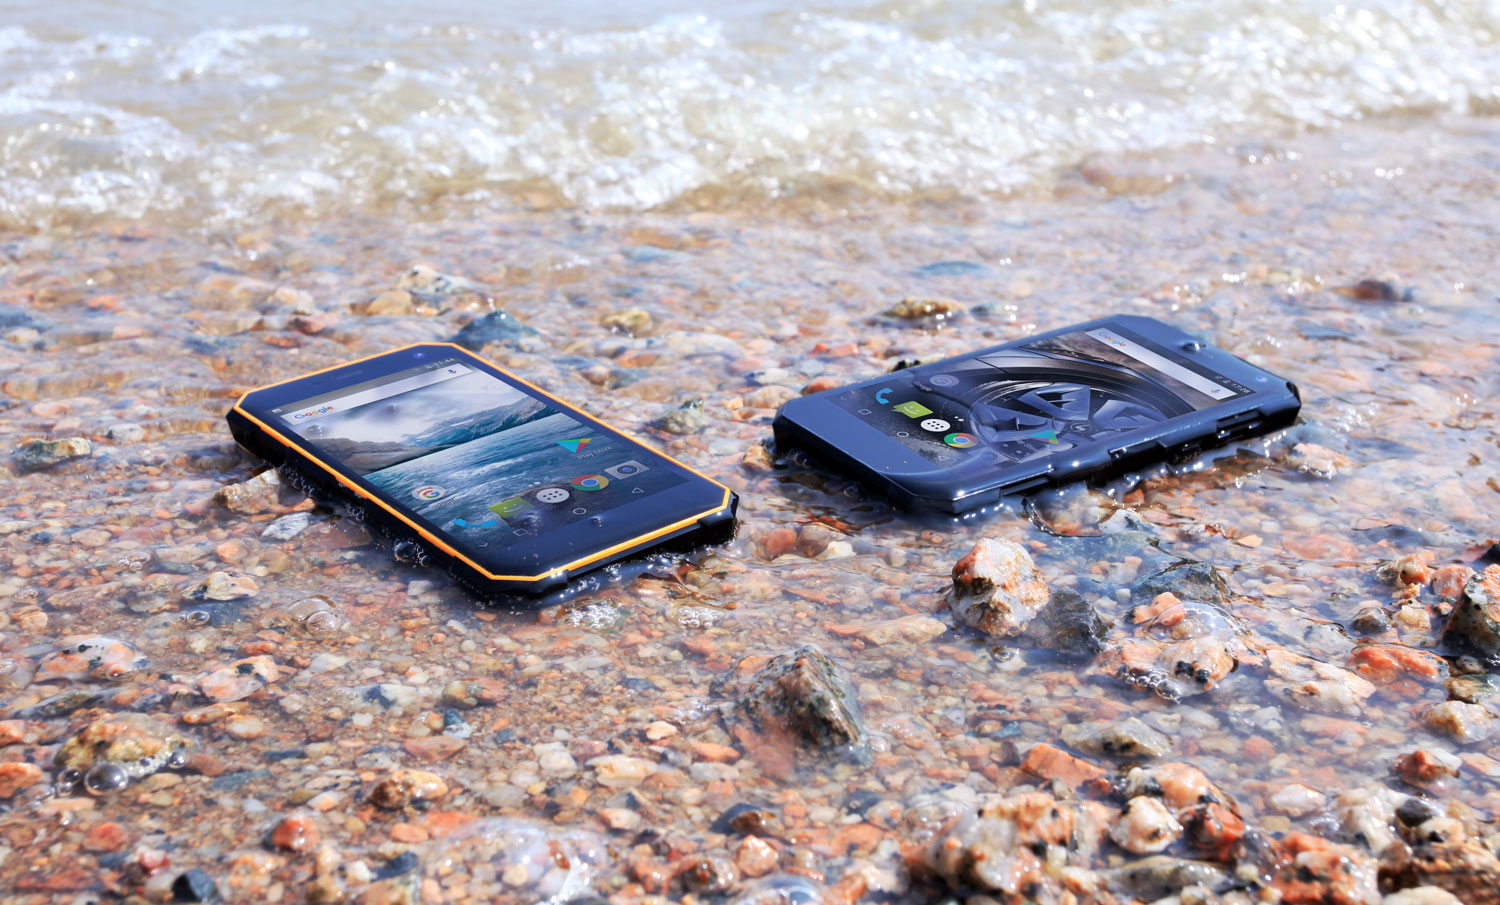 The Chinese have developed a smartphone-amphibian